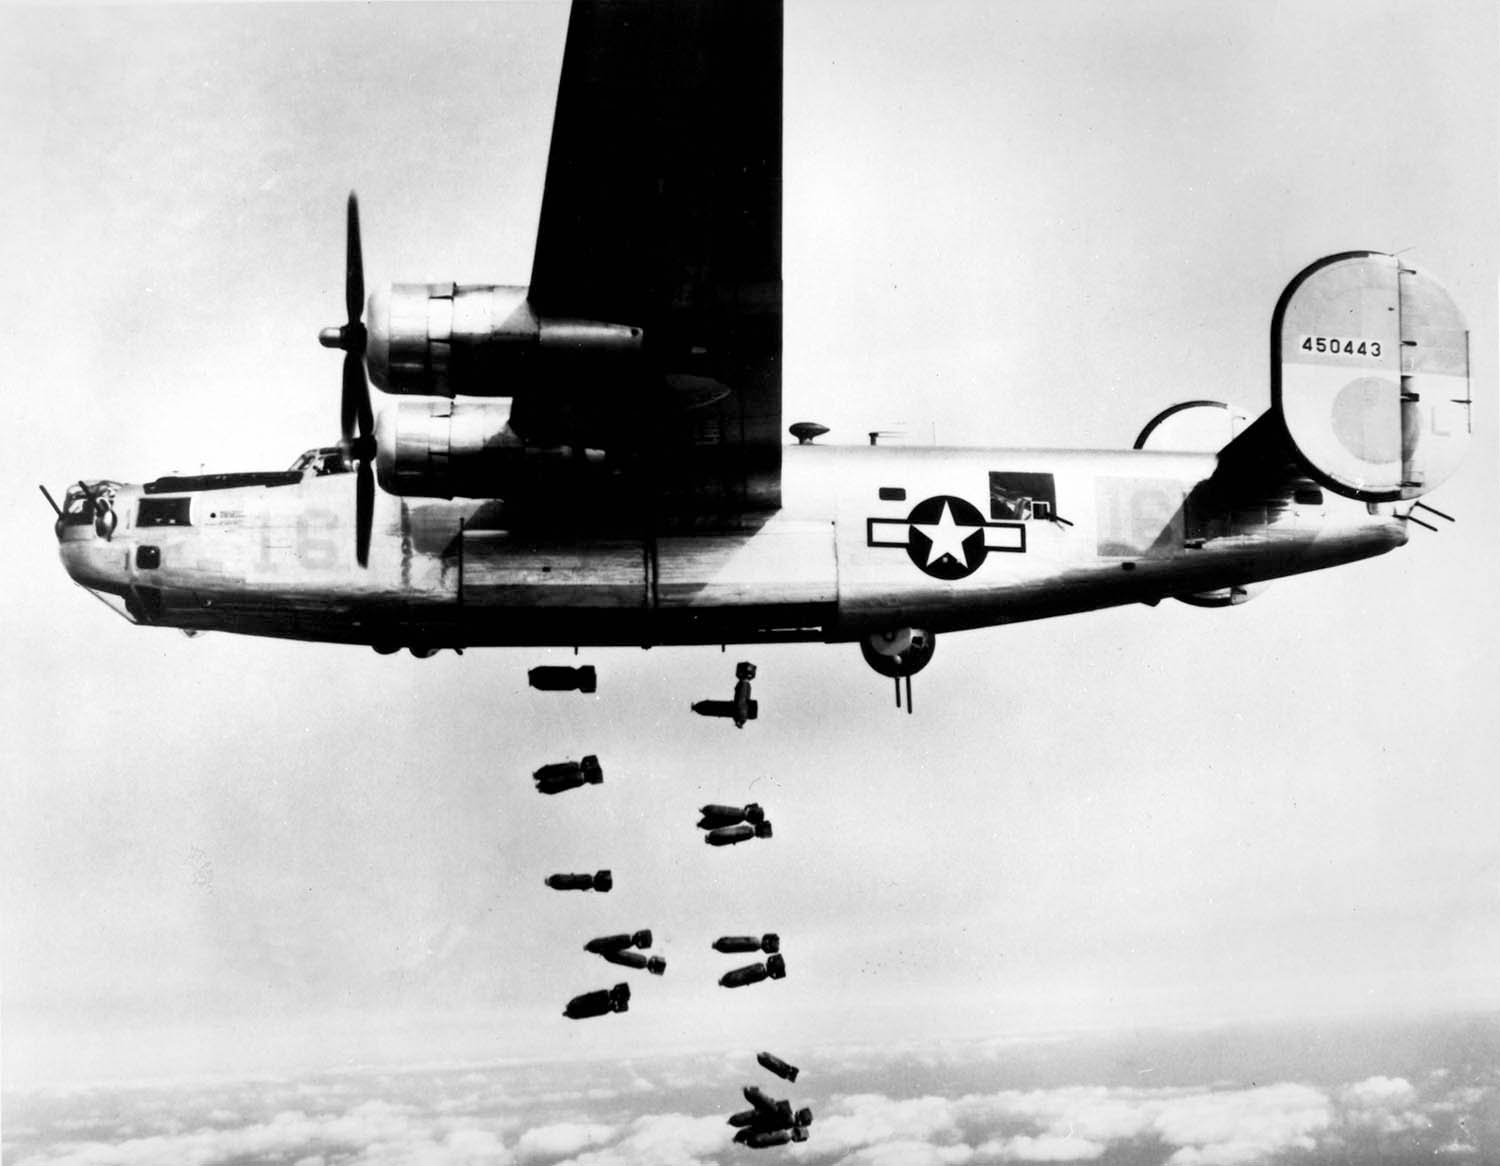 A B-24 flies over Friedrichshaven, Germany. The B-24 was employed in operations in every combat theater during World War II.